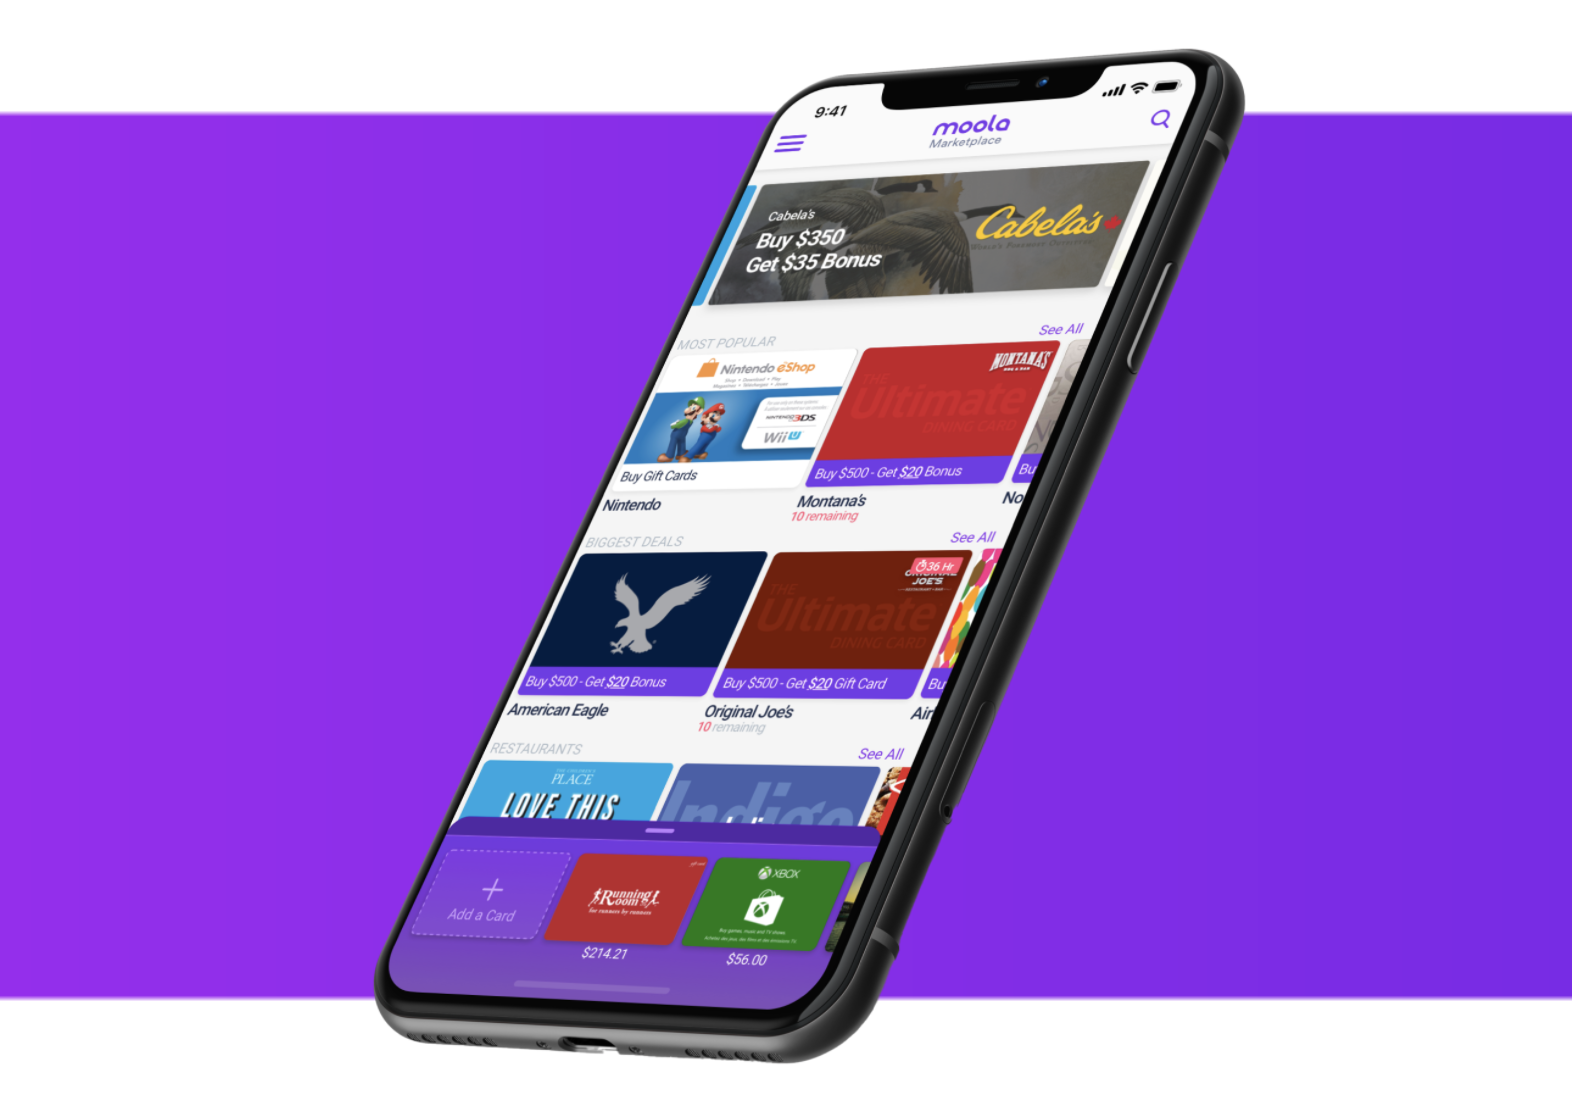 Screenshot of the moola gift card app on an iPhone mockup on a purple background.